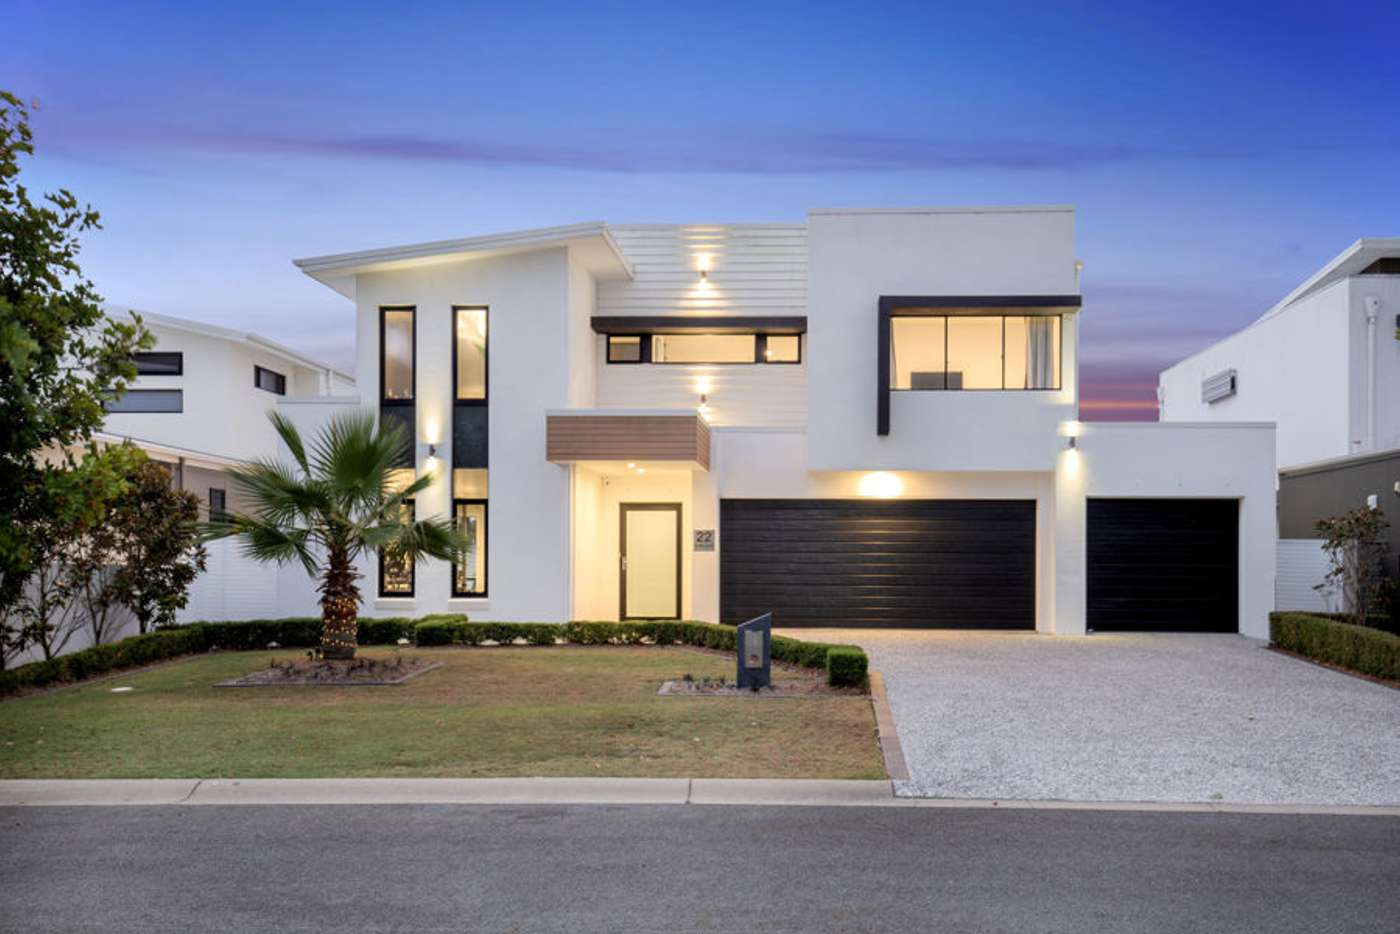 Main view of Homely house listing, 22 Windward Place, Jacobs Well QLD 4208